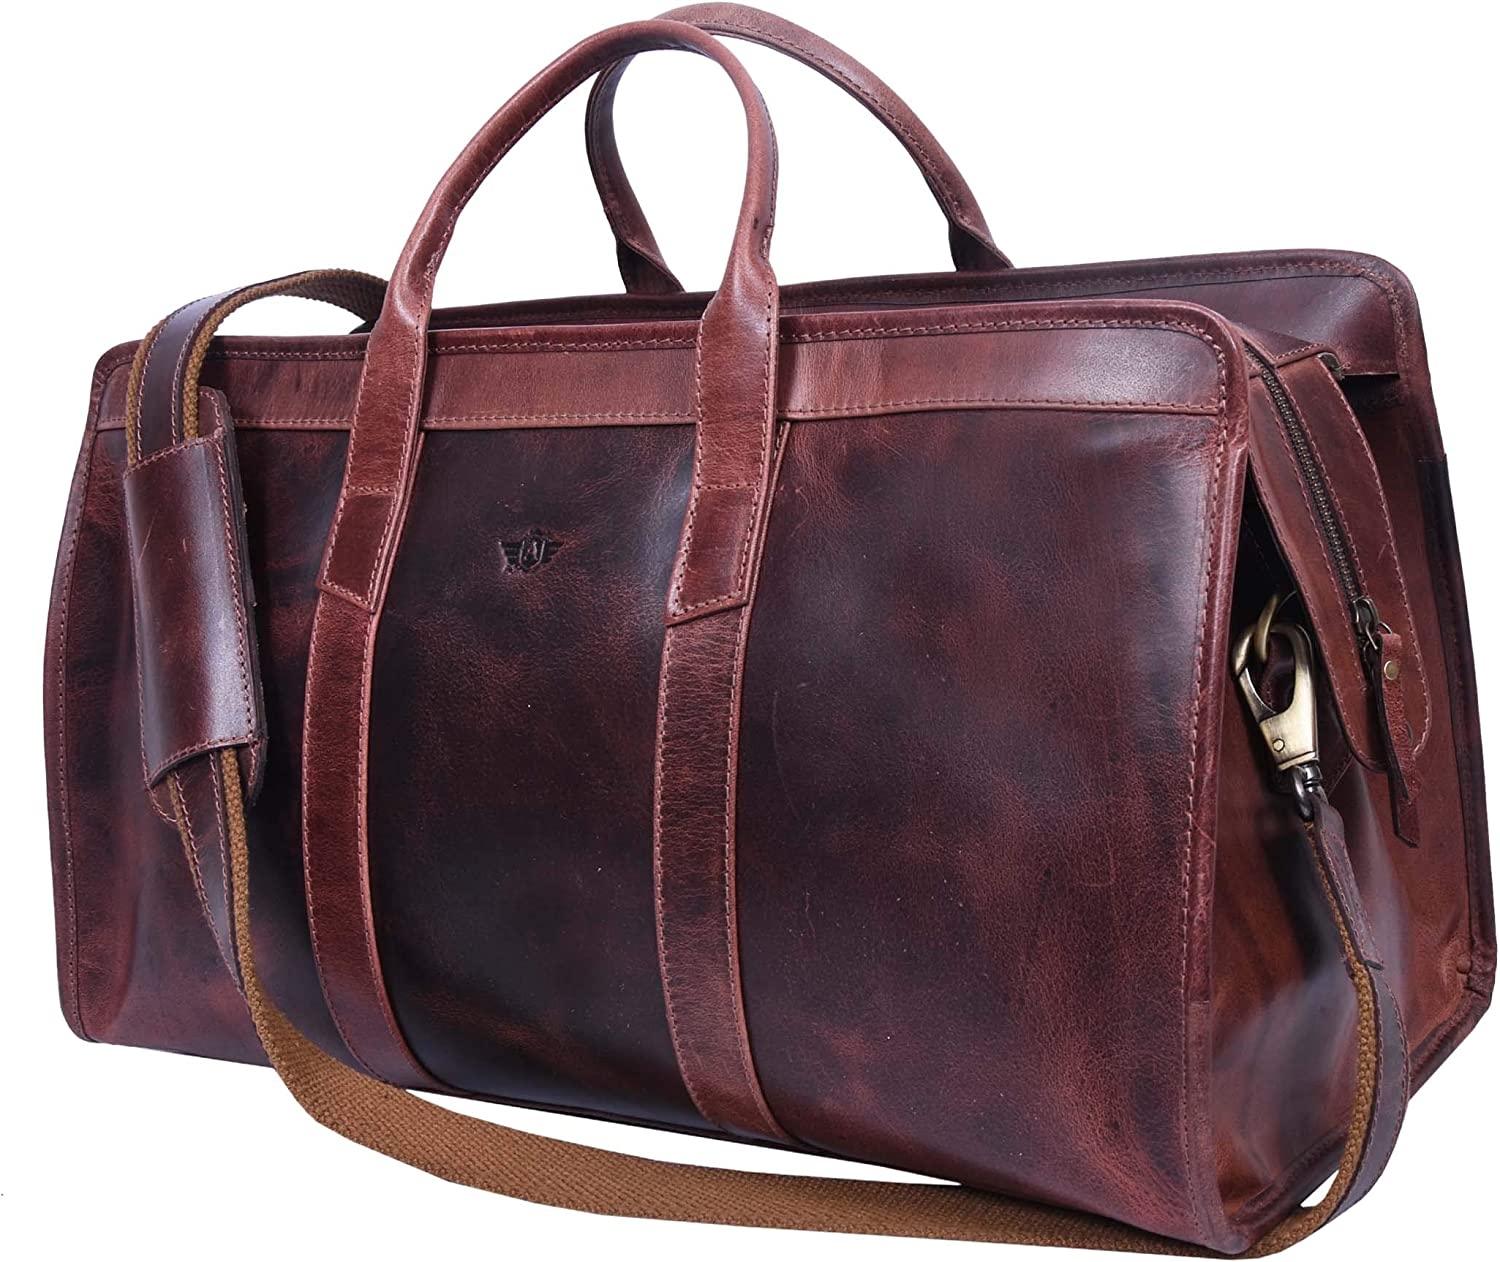 Addey Supply Company 20 Leather Weekender Bag Overnight Travel Duffel Bag